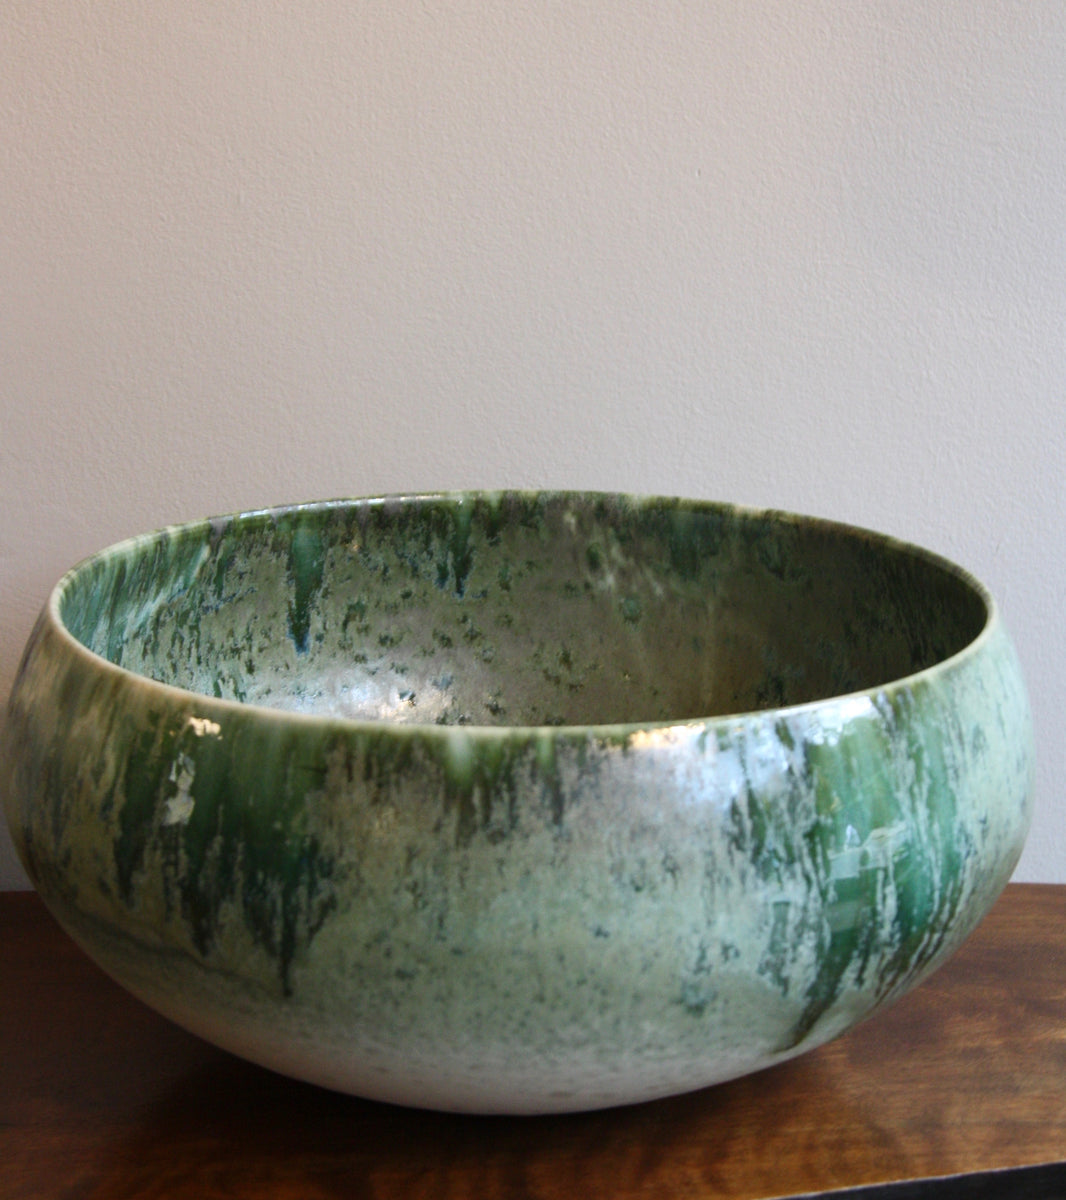 Large Cauldron Shaped Bowl <br> White & Green Glaze